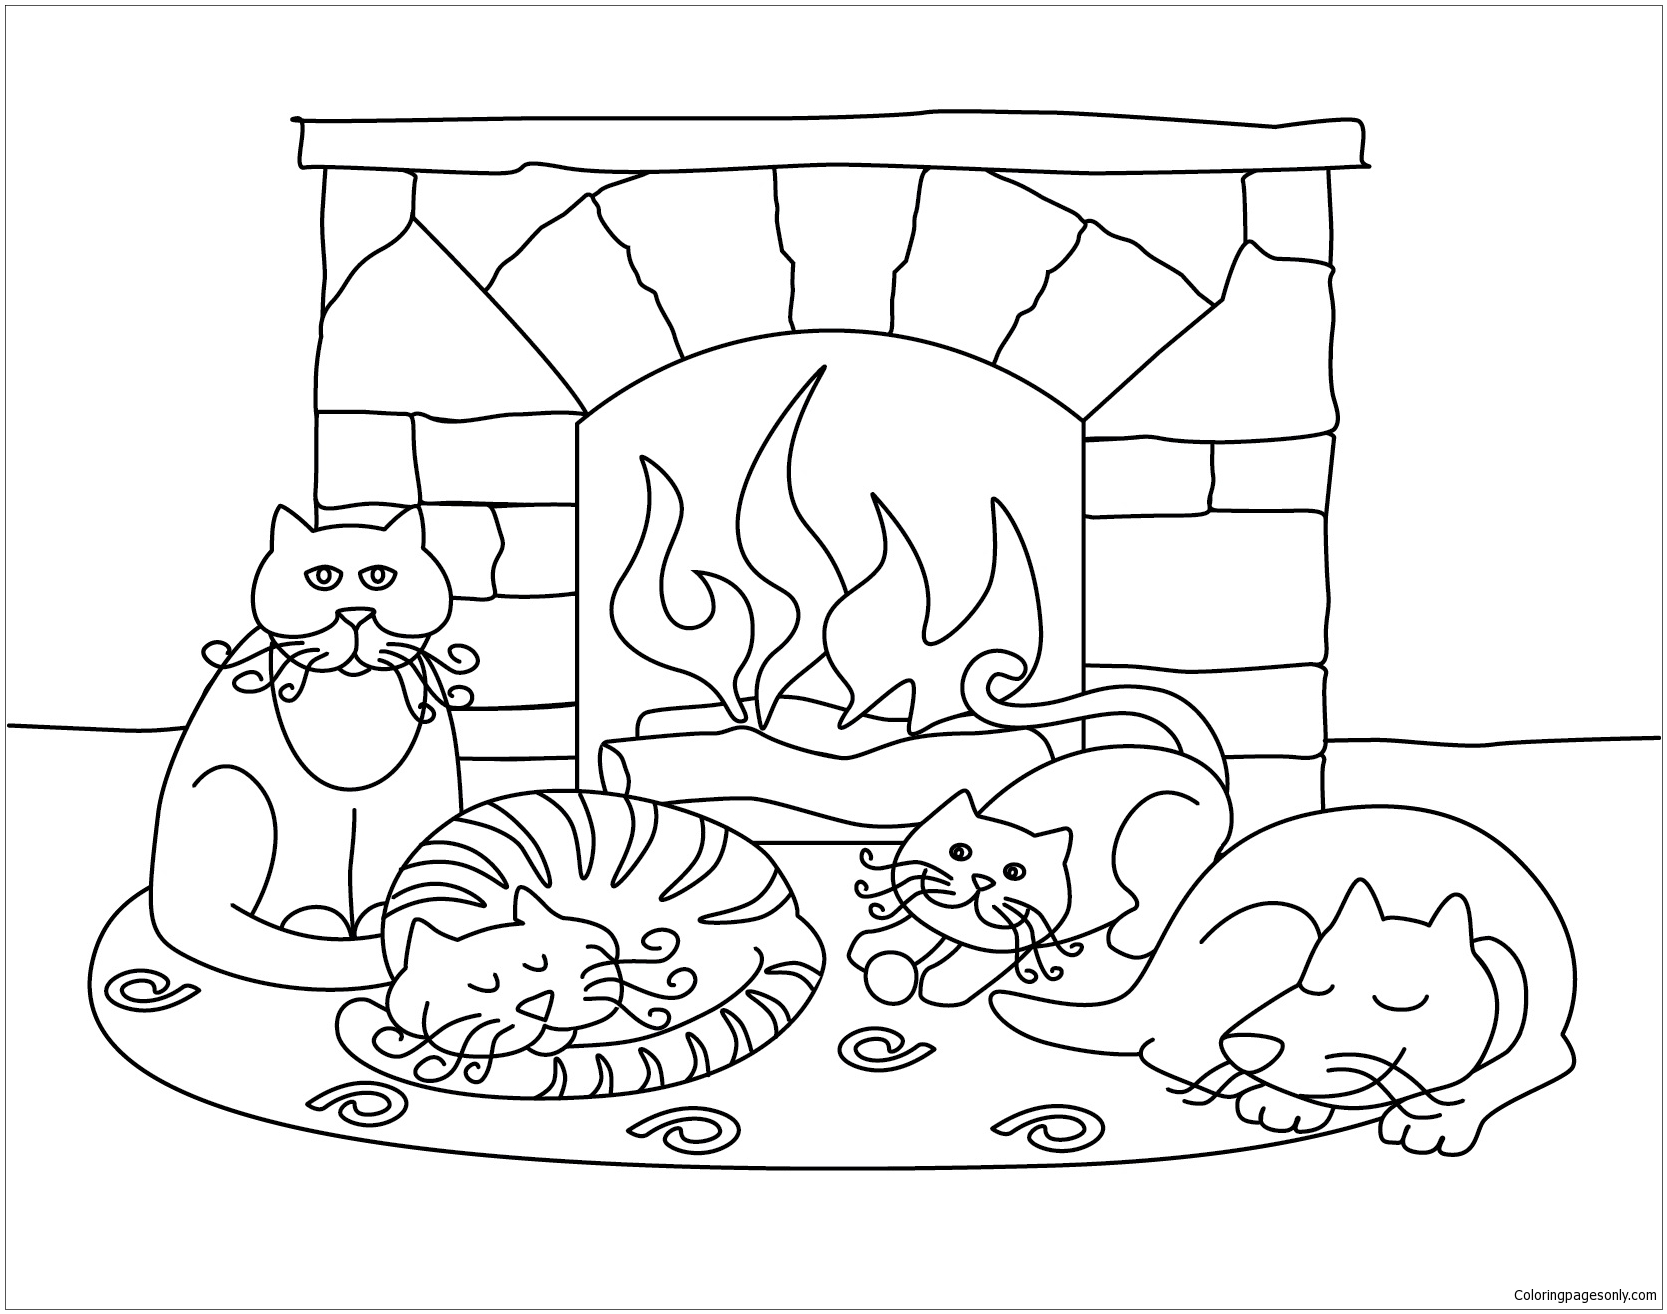 Winter Scenes With Cute Animals Coloring Page